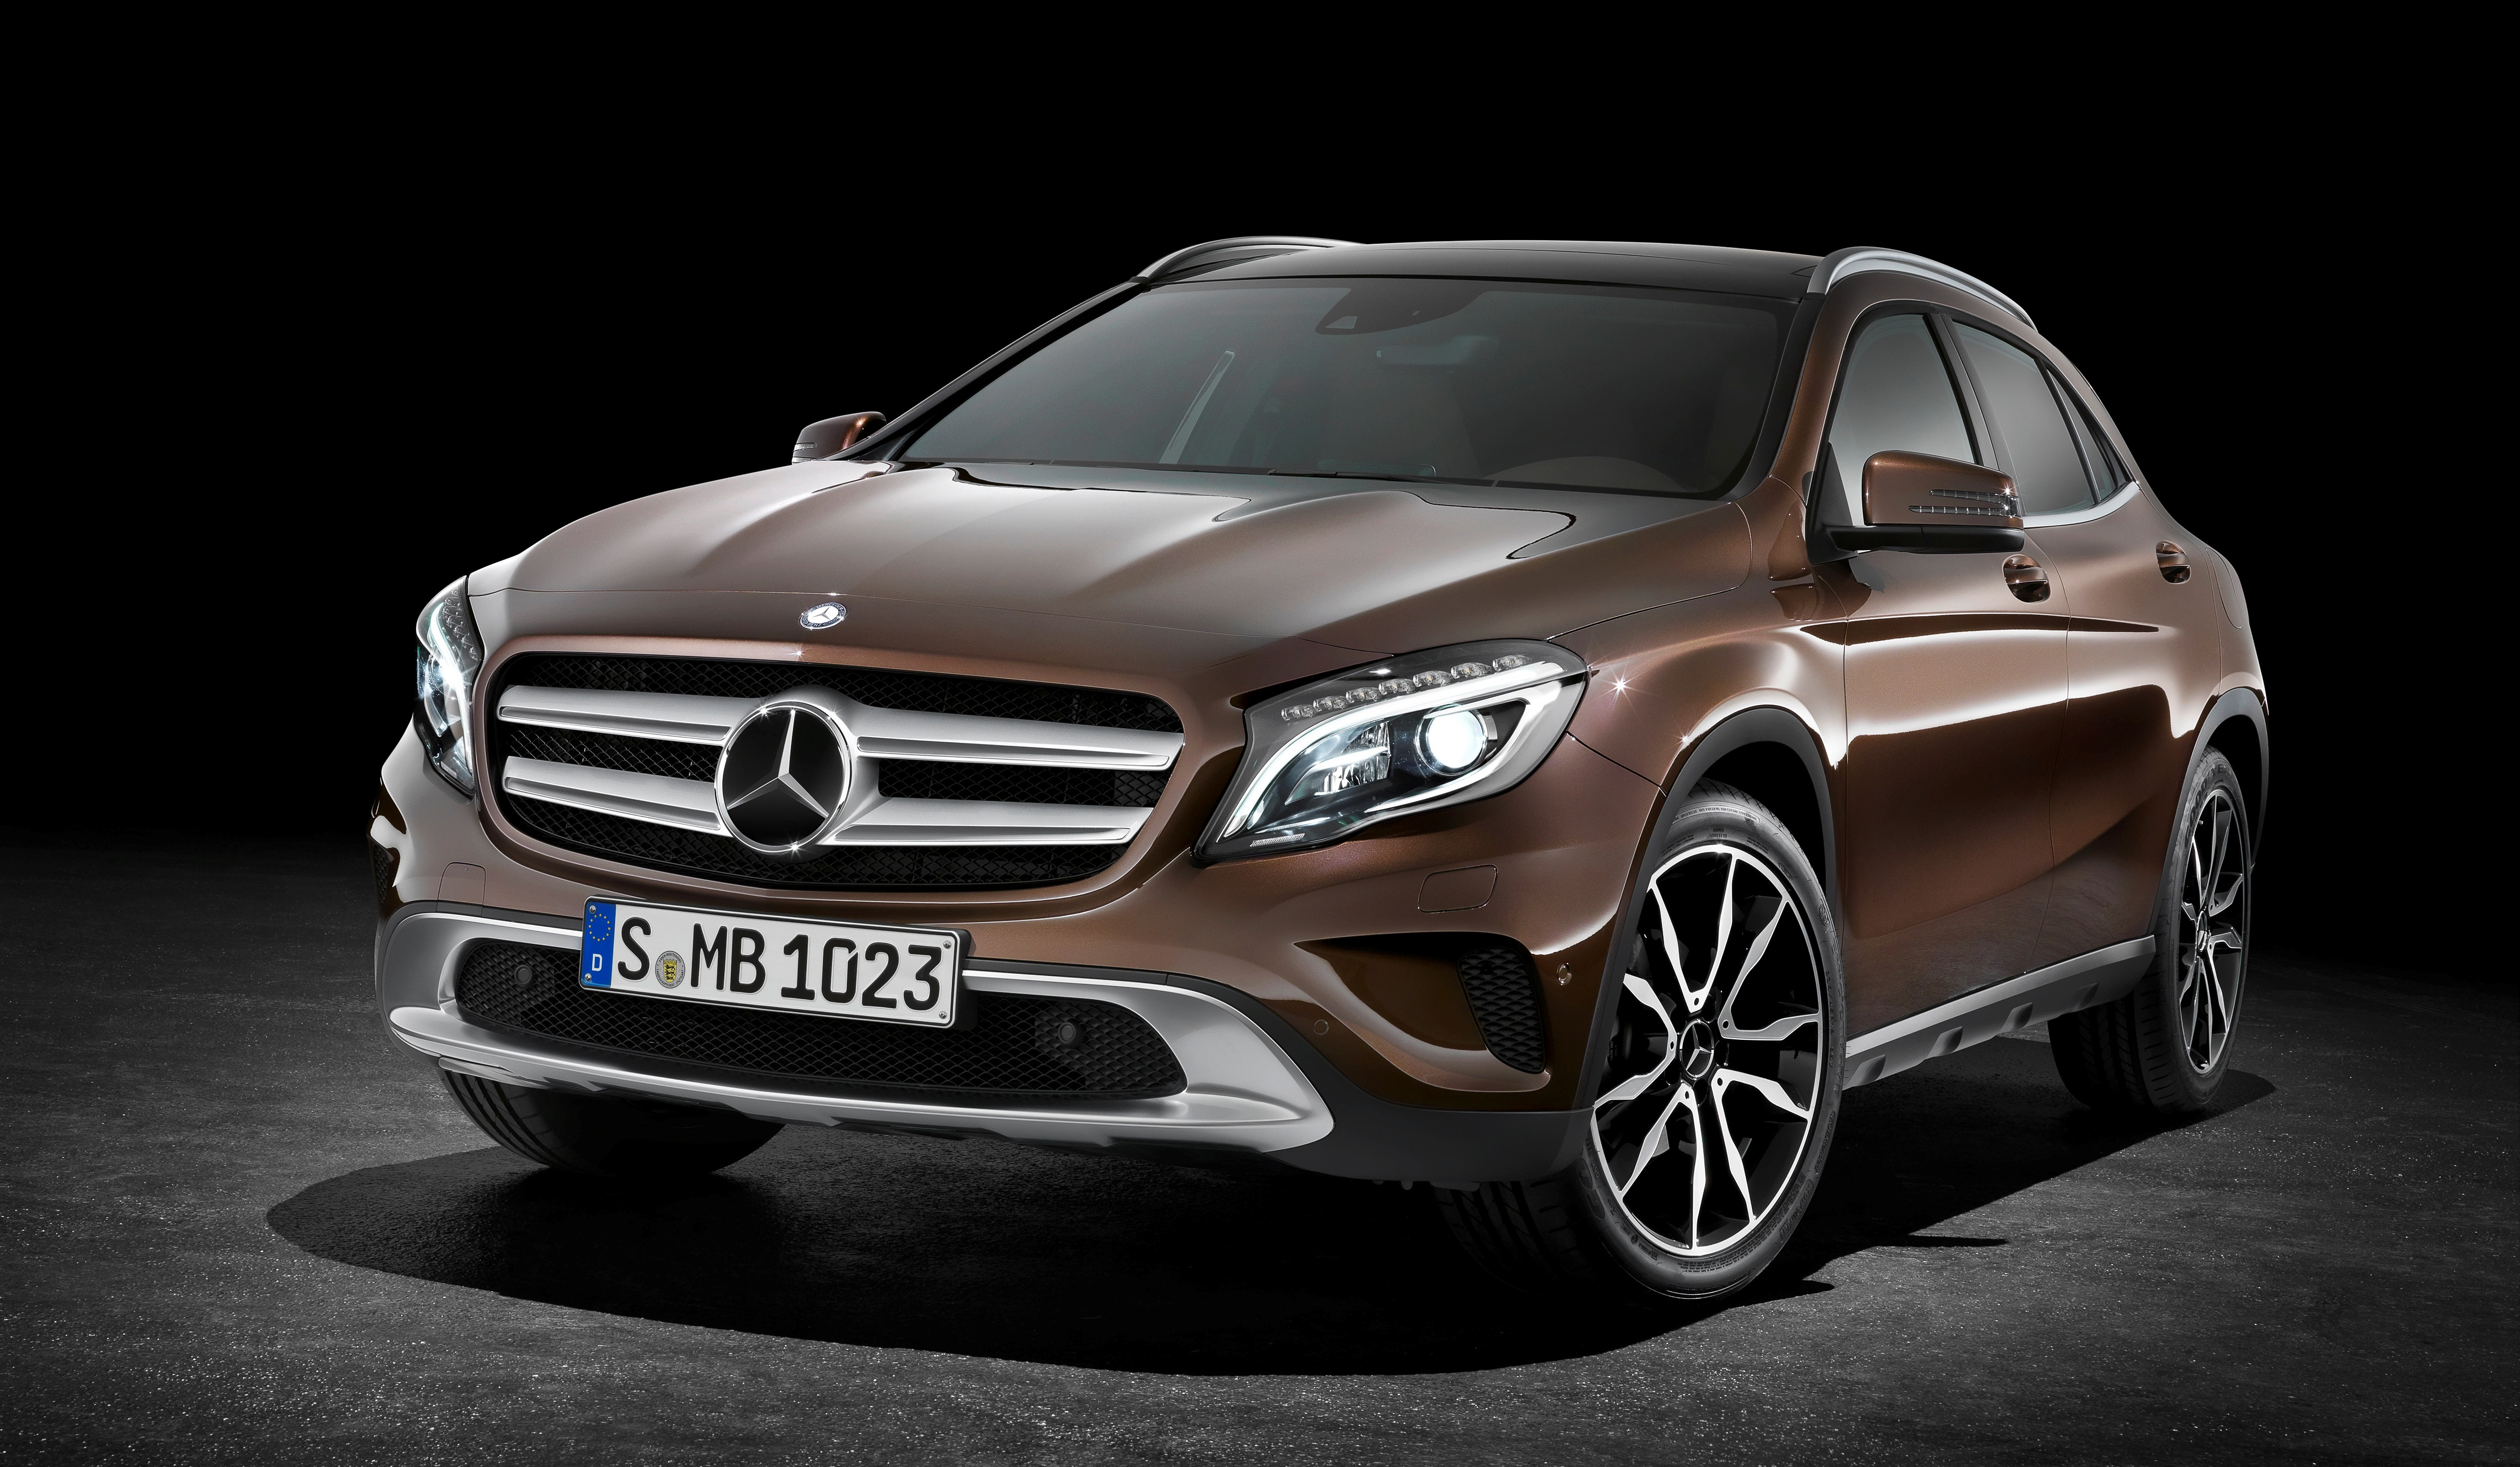 mercedes-benz usa fears it won't get as many glas as needed | top speed